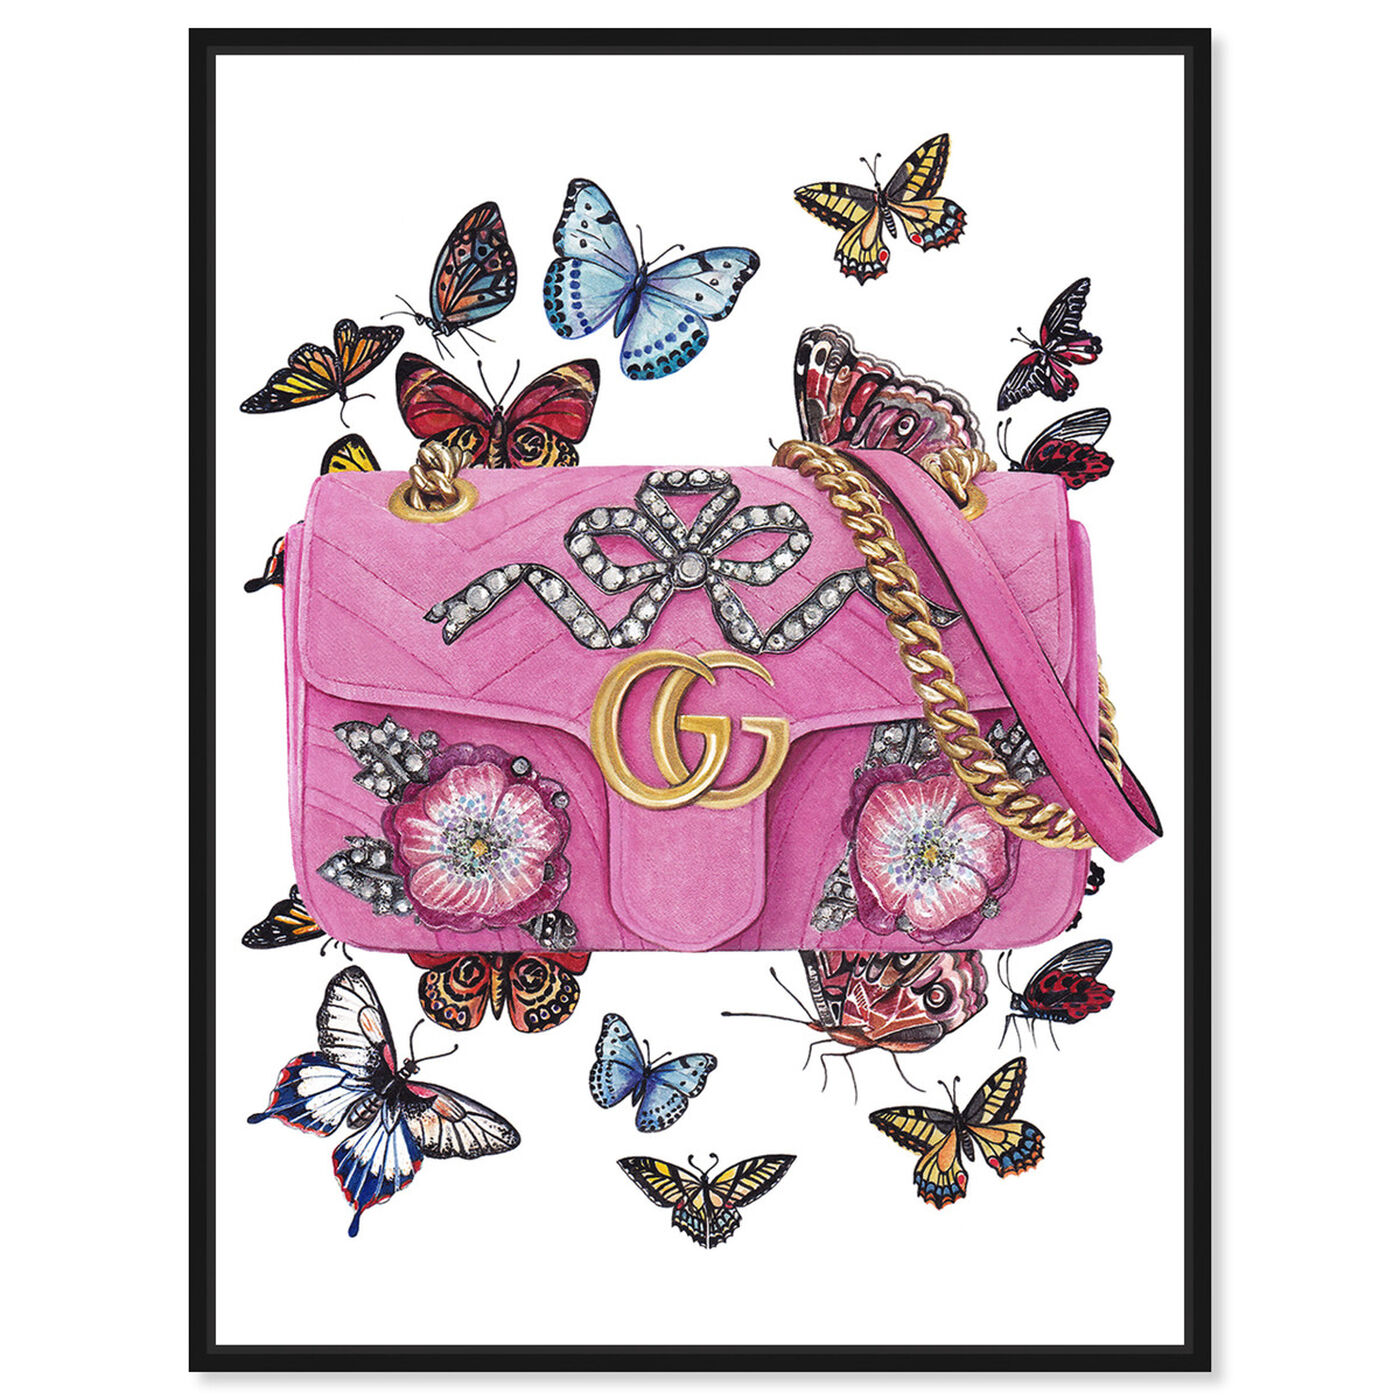 Front view of Doll Memories - Butterflies featuring fashion and glam and handbags art.